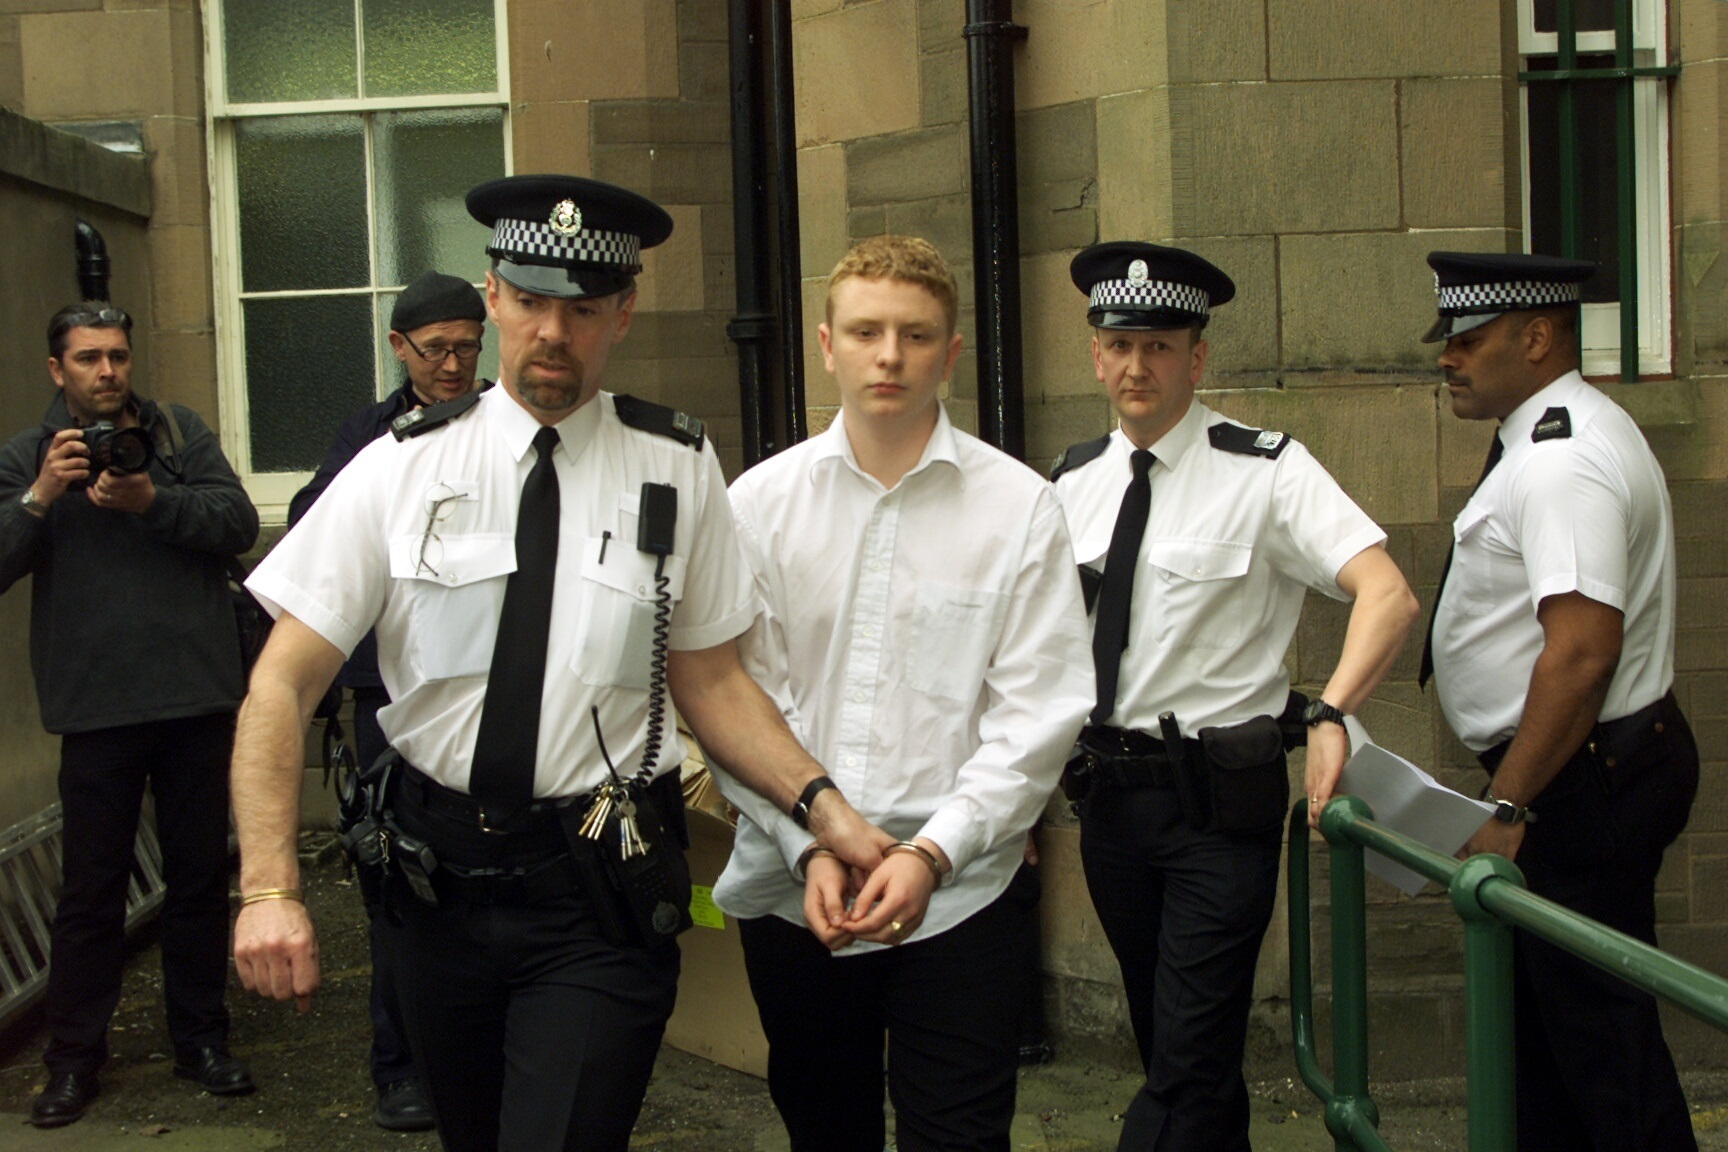 Robbie McIntosh is led from away from the High Court in Forfar after sentencing for murder in 2002.